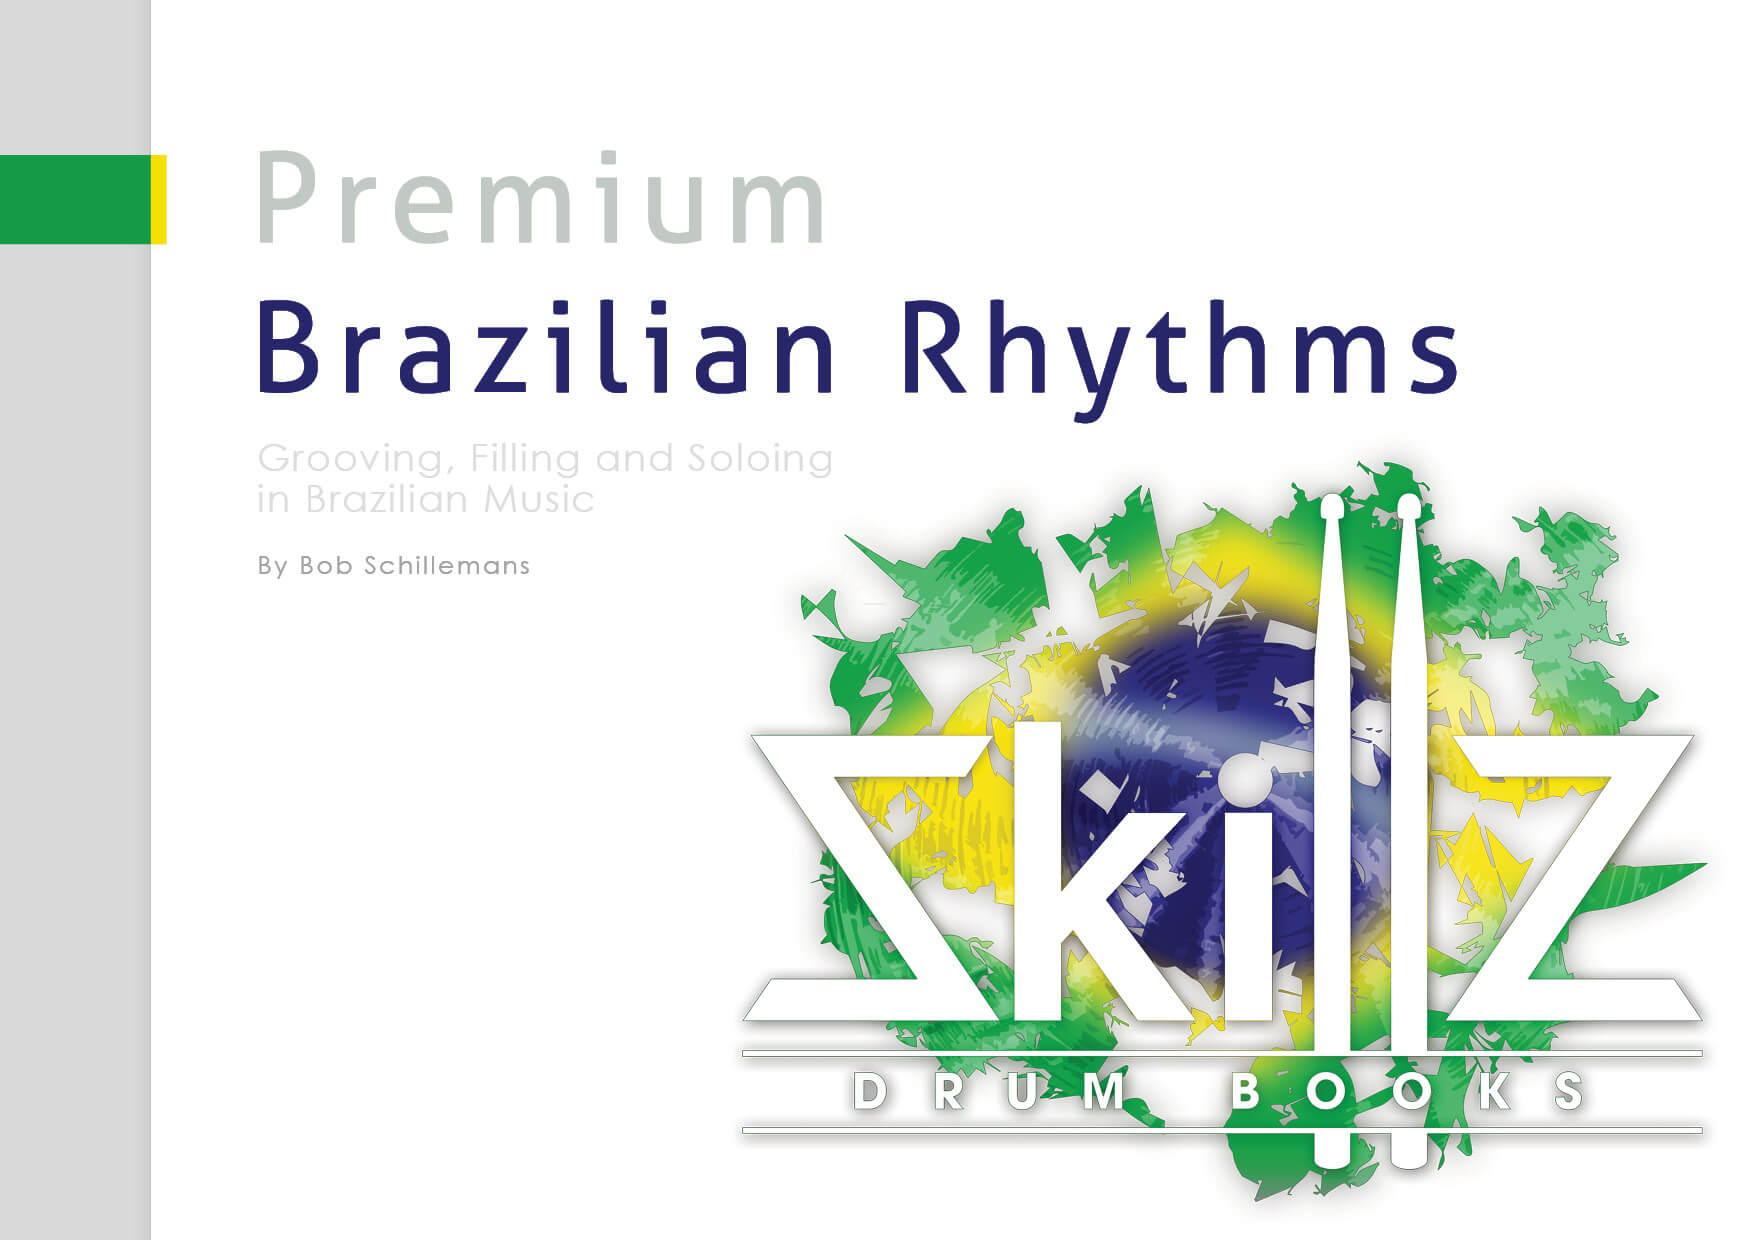 Brazilian Rhythms Grooving, Filling and Soloing in Brazilian Music Premium Drumming Book Course Cover Skillz Drum Lessons